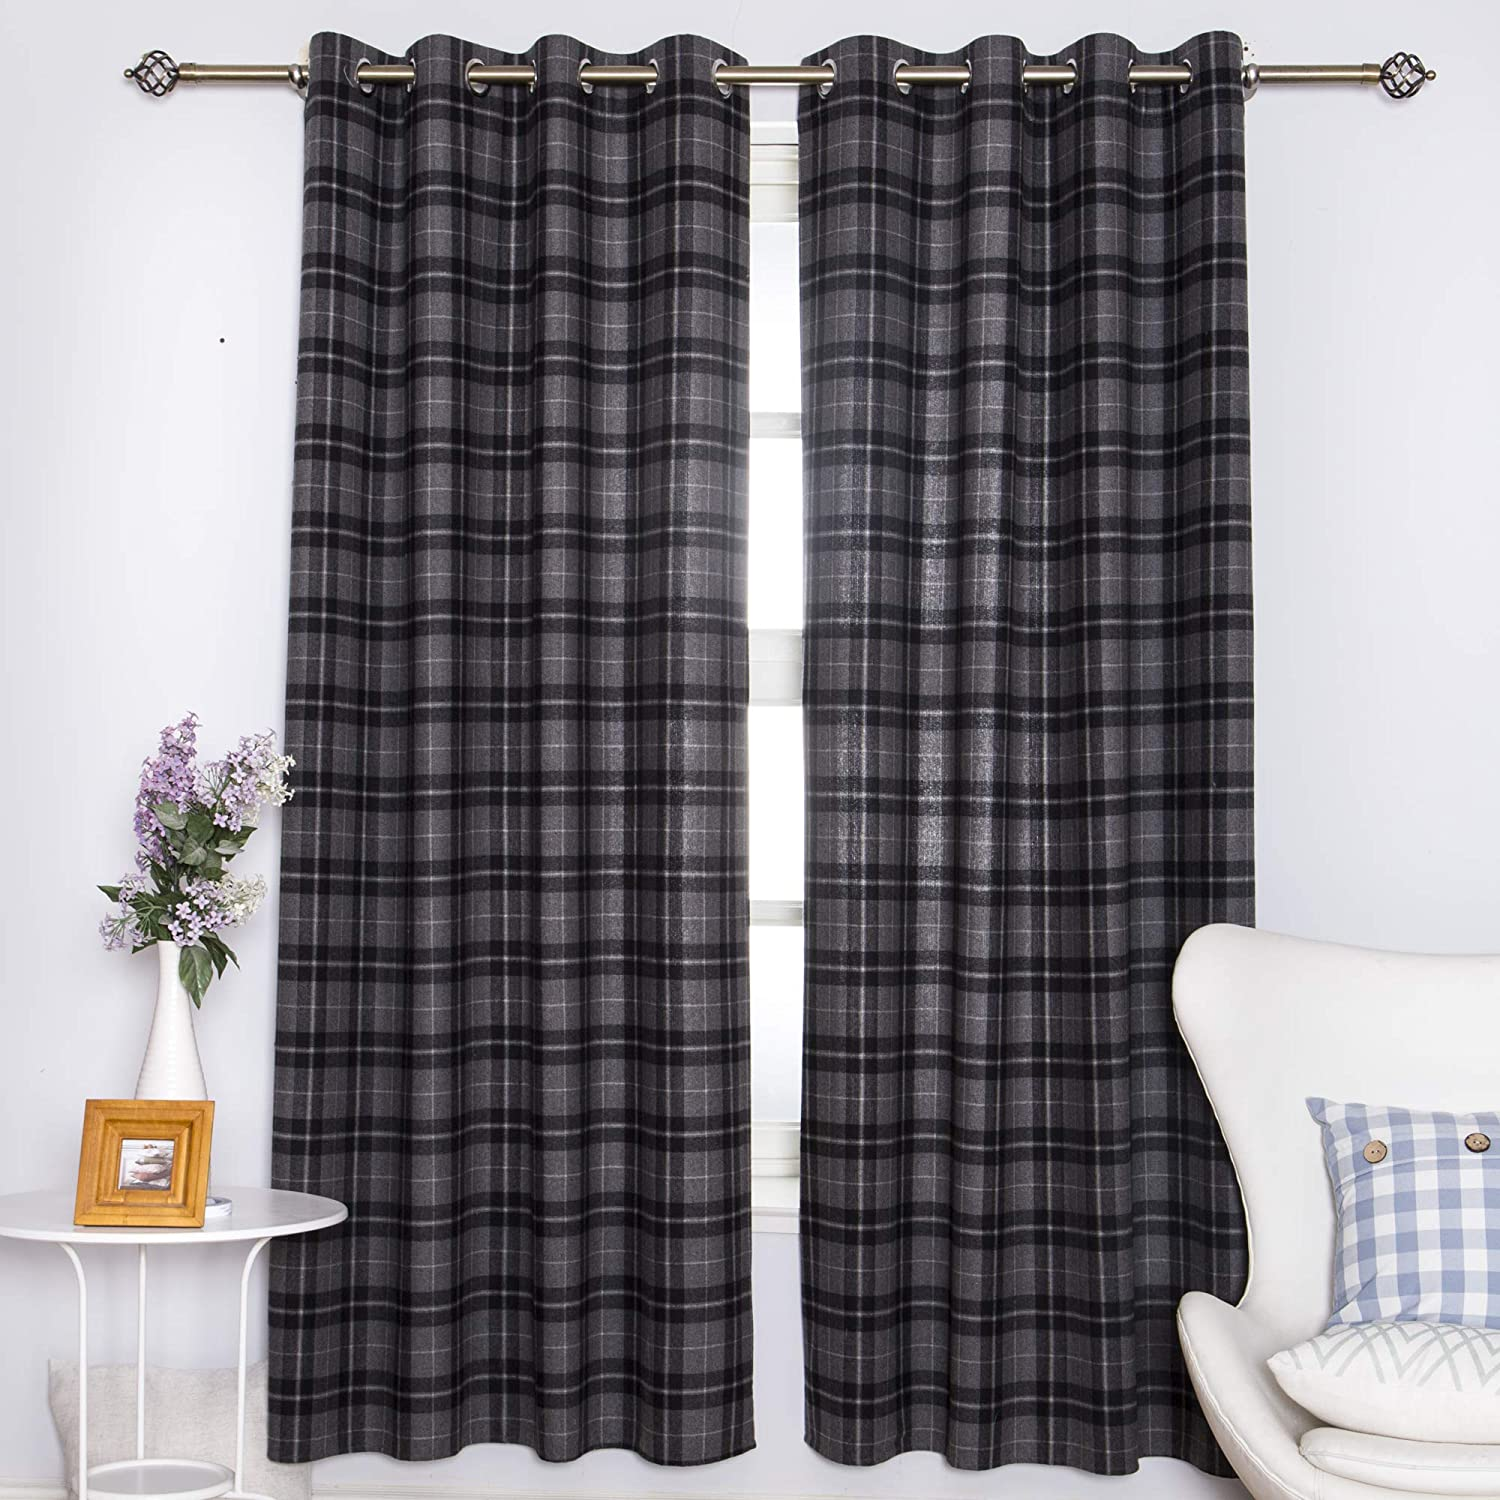 DOLLMEXX Plaid Curtains, Lumberjack Fashion Buffalo Style Checks Pattern  Retro Style with Grid Composition, Living Room Bedroom Window Drapes(2  Panels, ...